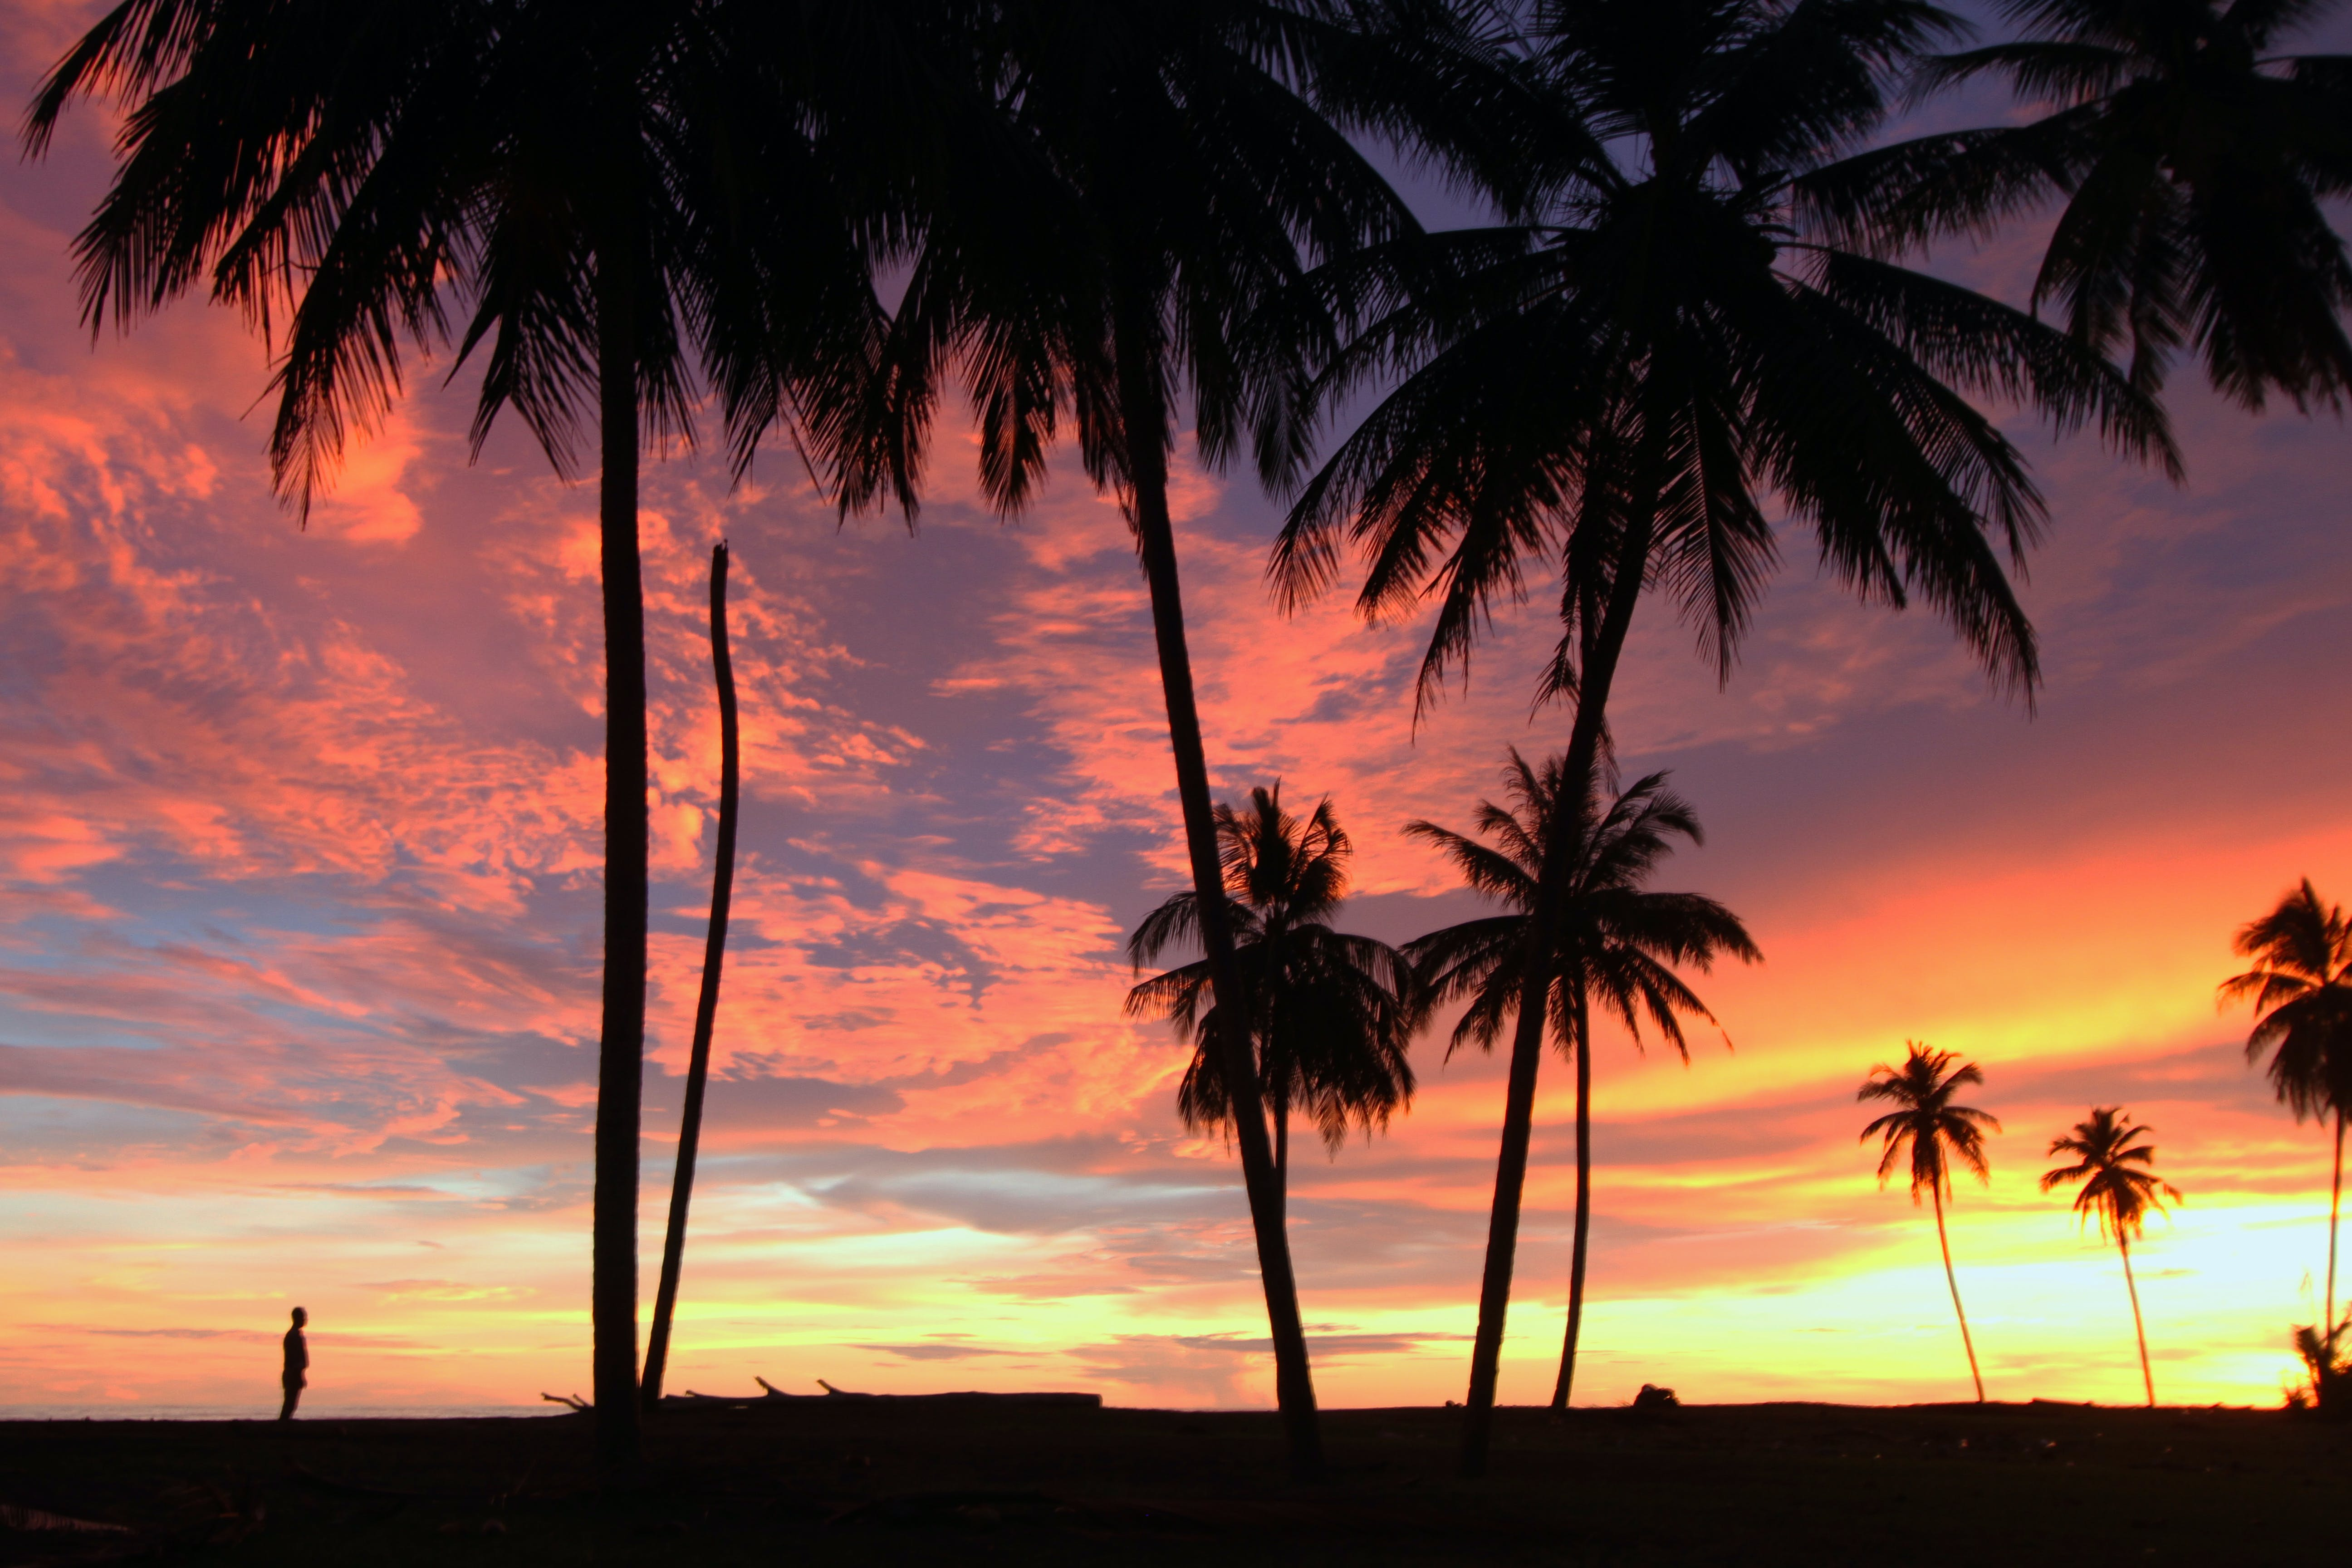 Free stock photo of Sunset in Meulaboh